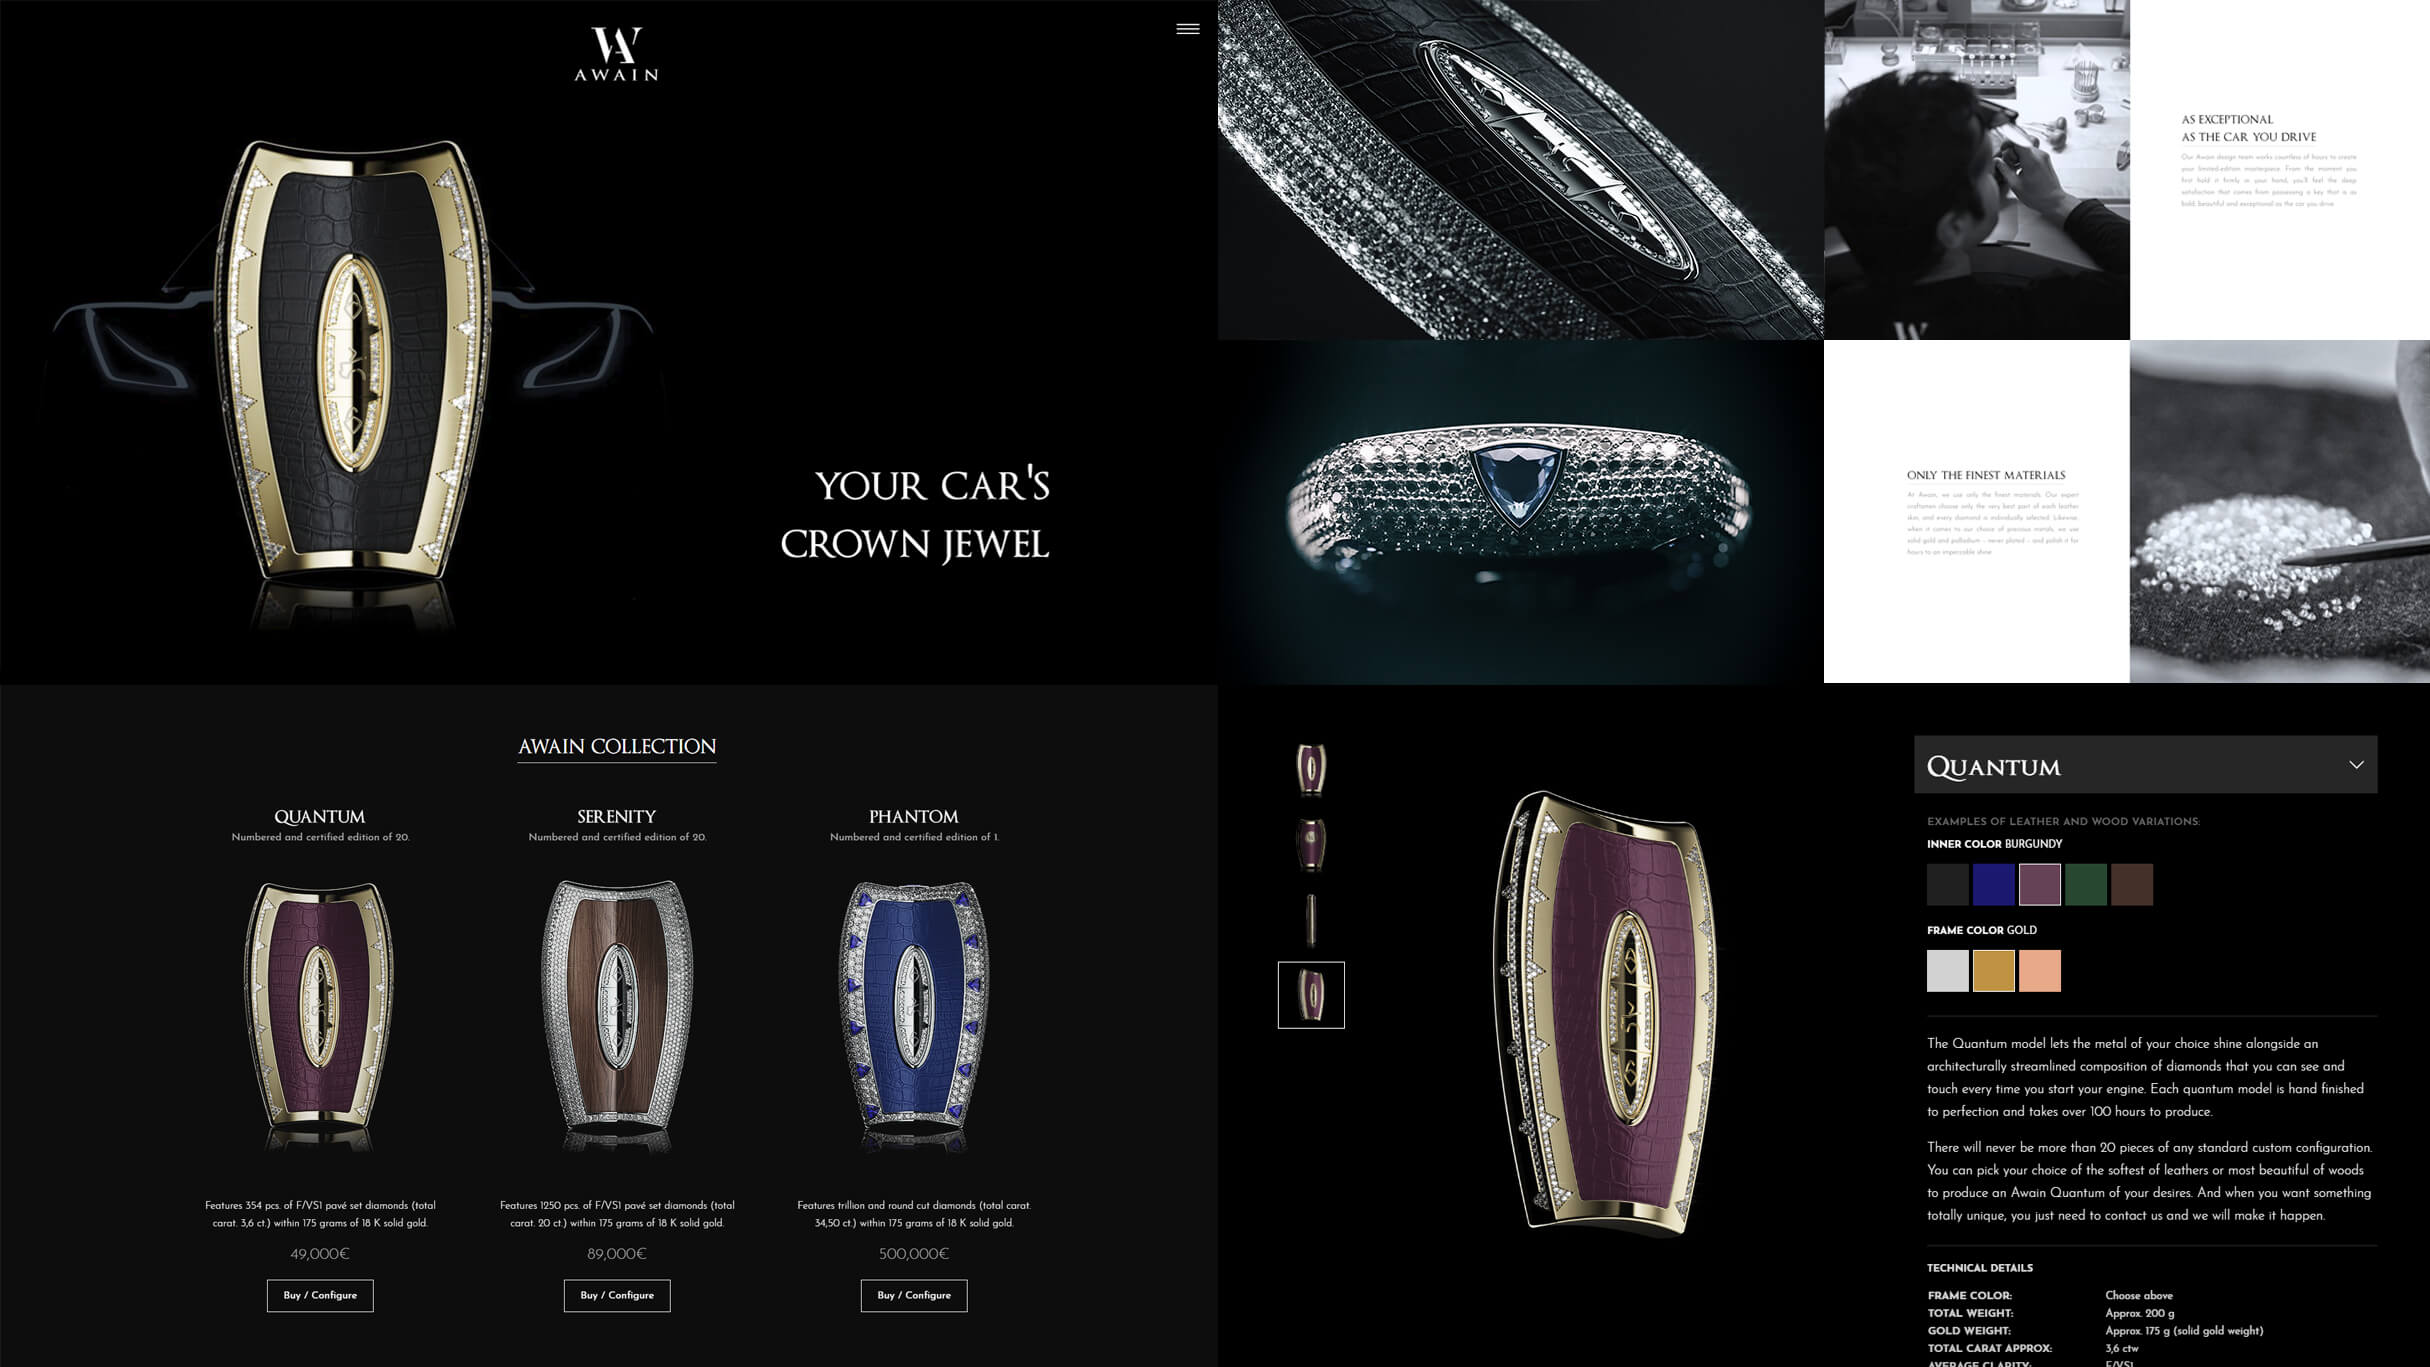 Website for Awain, with product configurator from 3D model renders.